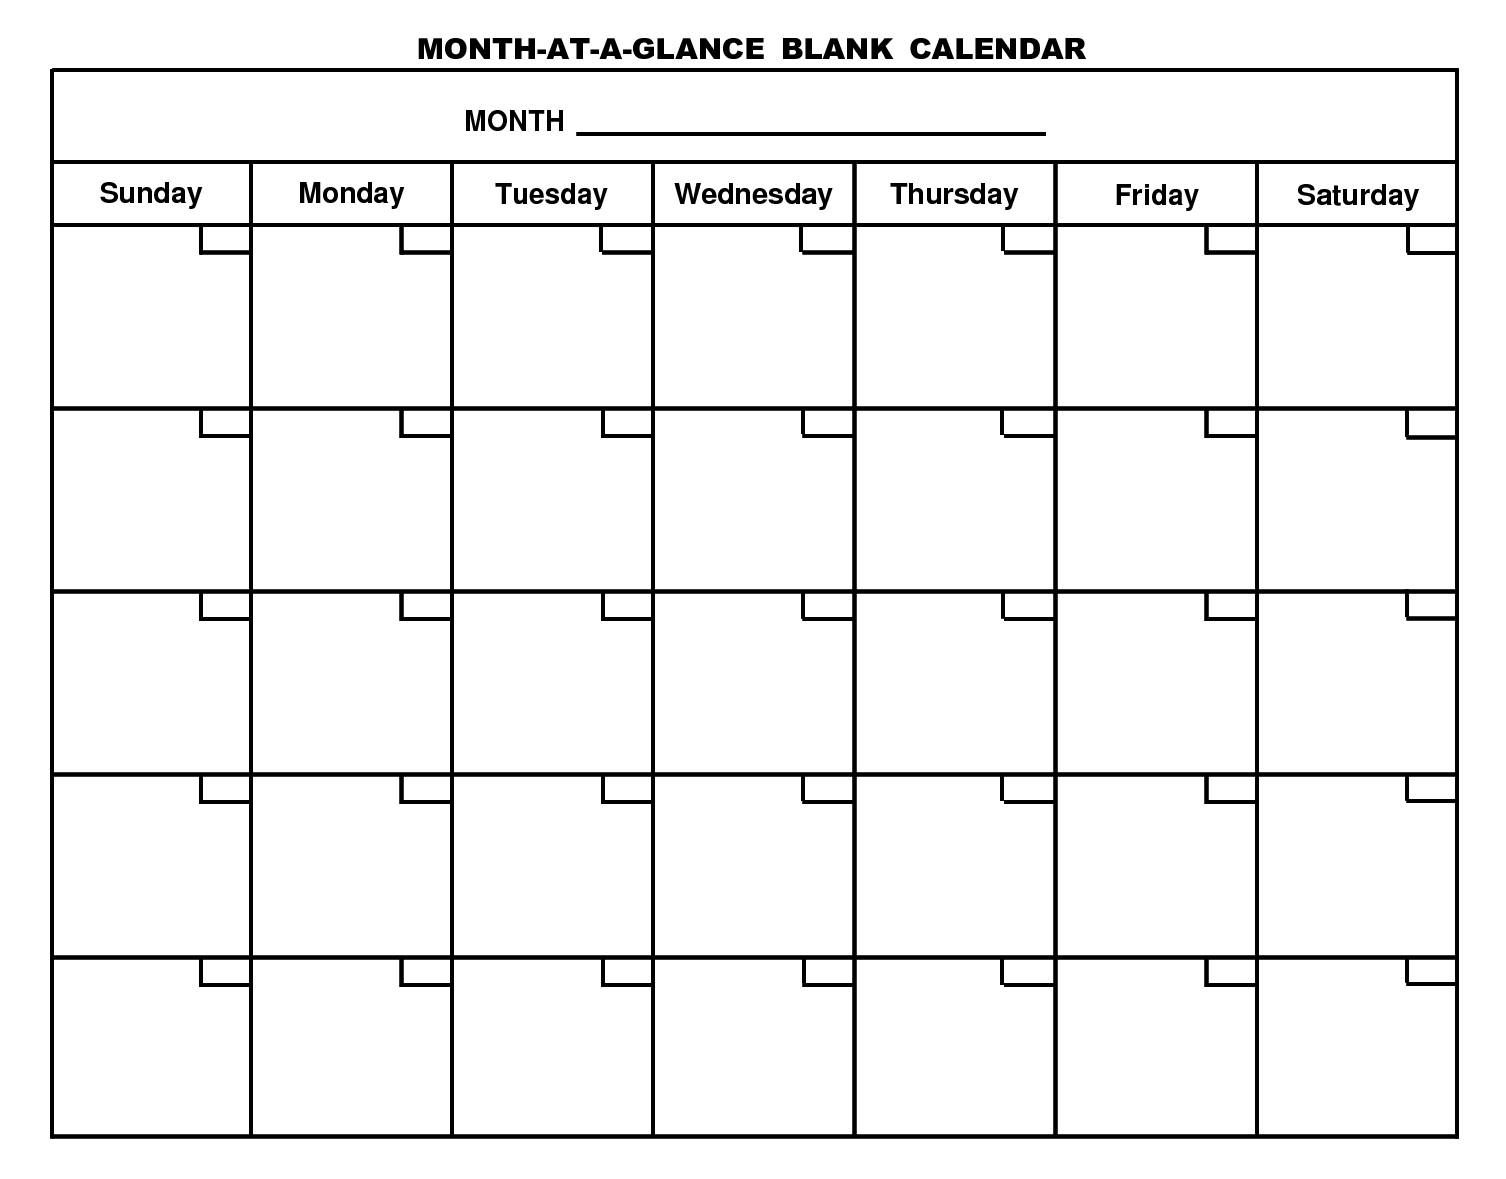 Blank Monthly Calendars - Yahoo Search Results | Umw | Printable intended for Blank September October November Calendar Yahoo